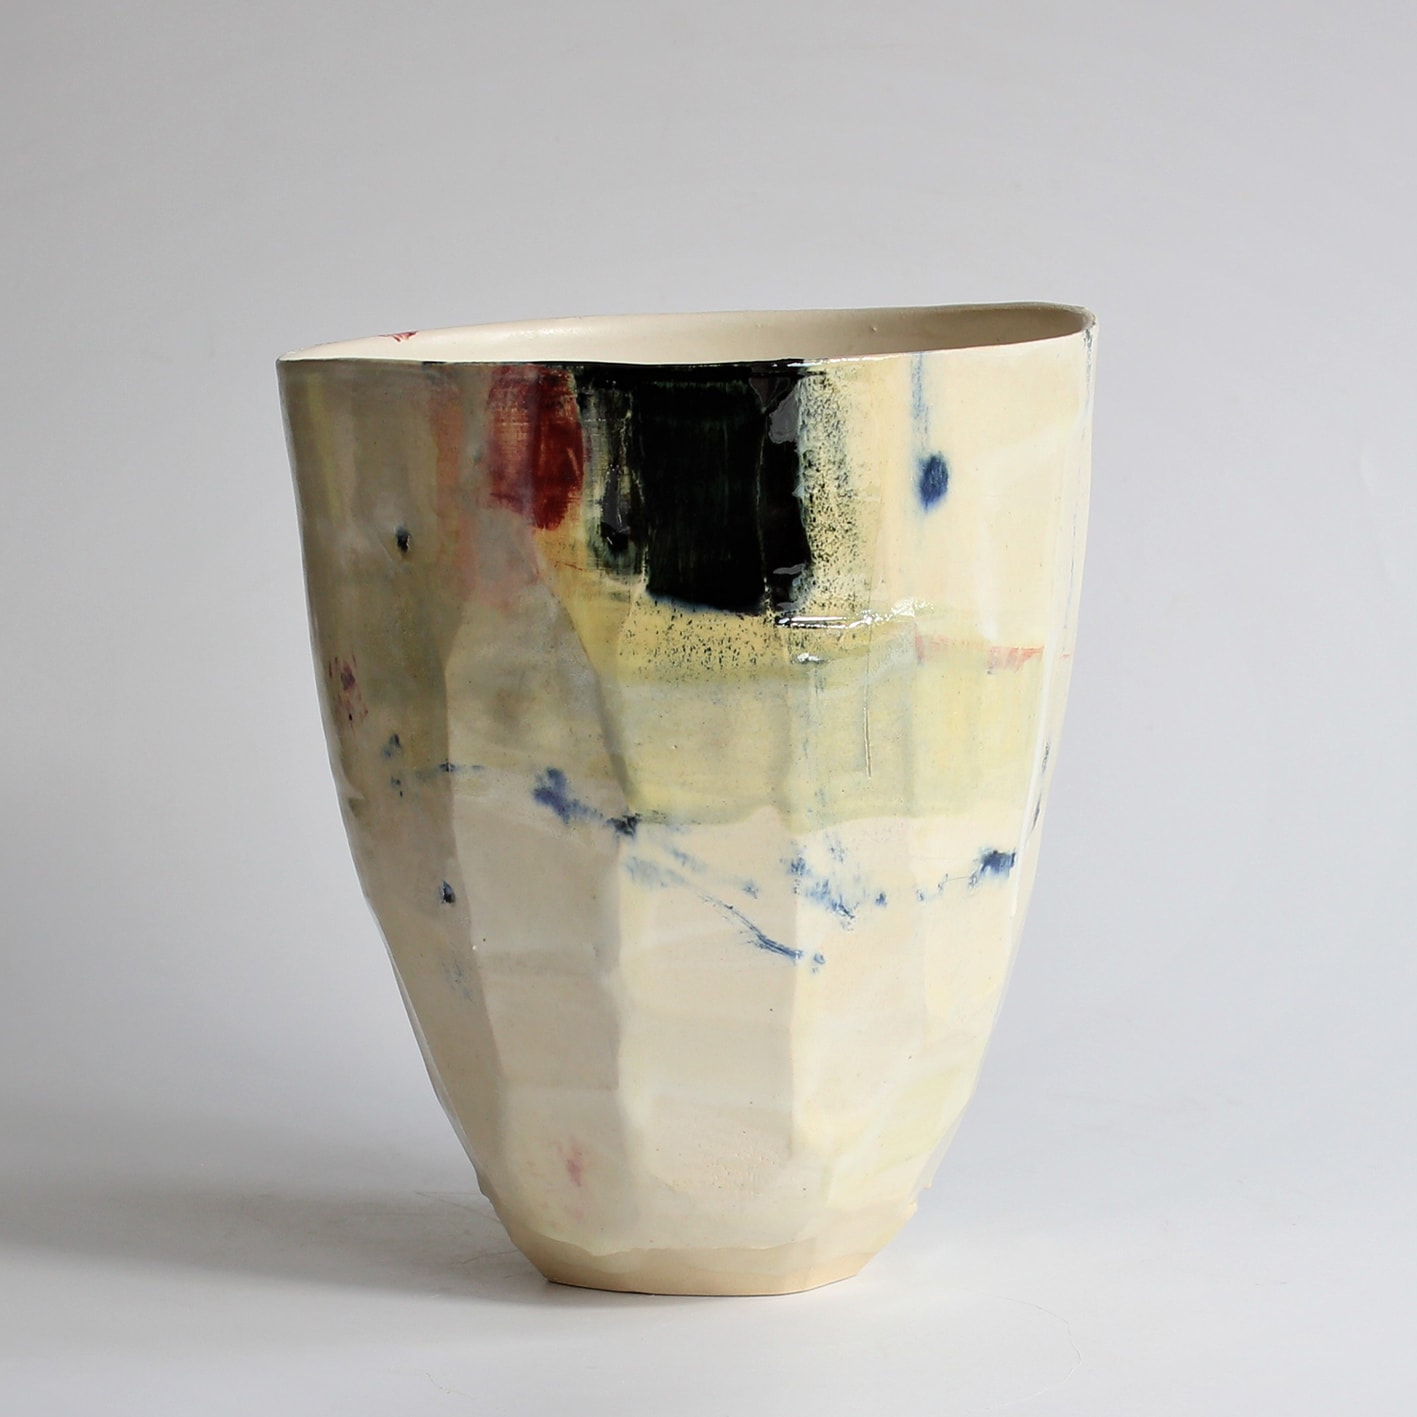 """<span class=""""link fancybox-details-link""""><a href=""""/artists/34-barry-stedman/works/6720-barry-stedman-each-passing-day-series-vessel-a-2019/"""">View Detail Page</a></span><div class=""""artist""""><strong>Barry Stedman</strong></div> b. 1965 <div class=""""title""""><em>'Each Passing Day' Series Vessel (A)</em>, 2019</div> <div class=""""medium"""">thrown and altered earthenware, decorated with slips</div> <div class=""""dimensions"""">21 x 17 cm</div><div class=""""copyright_line"""">Own Art: £ 35.20 x 10 Months, 0% APR</div>"""